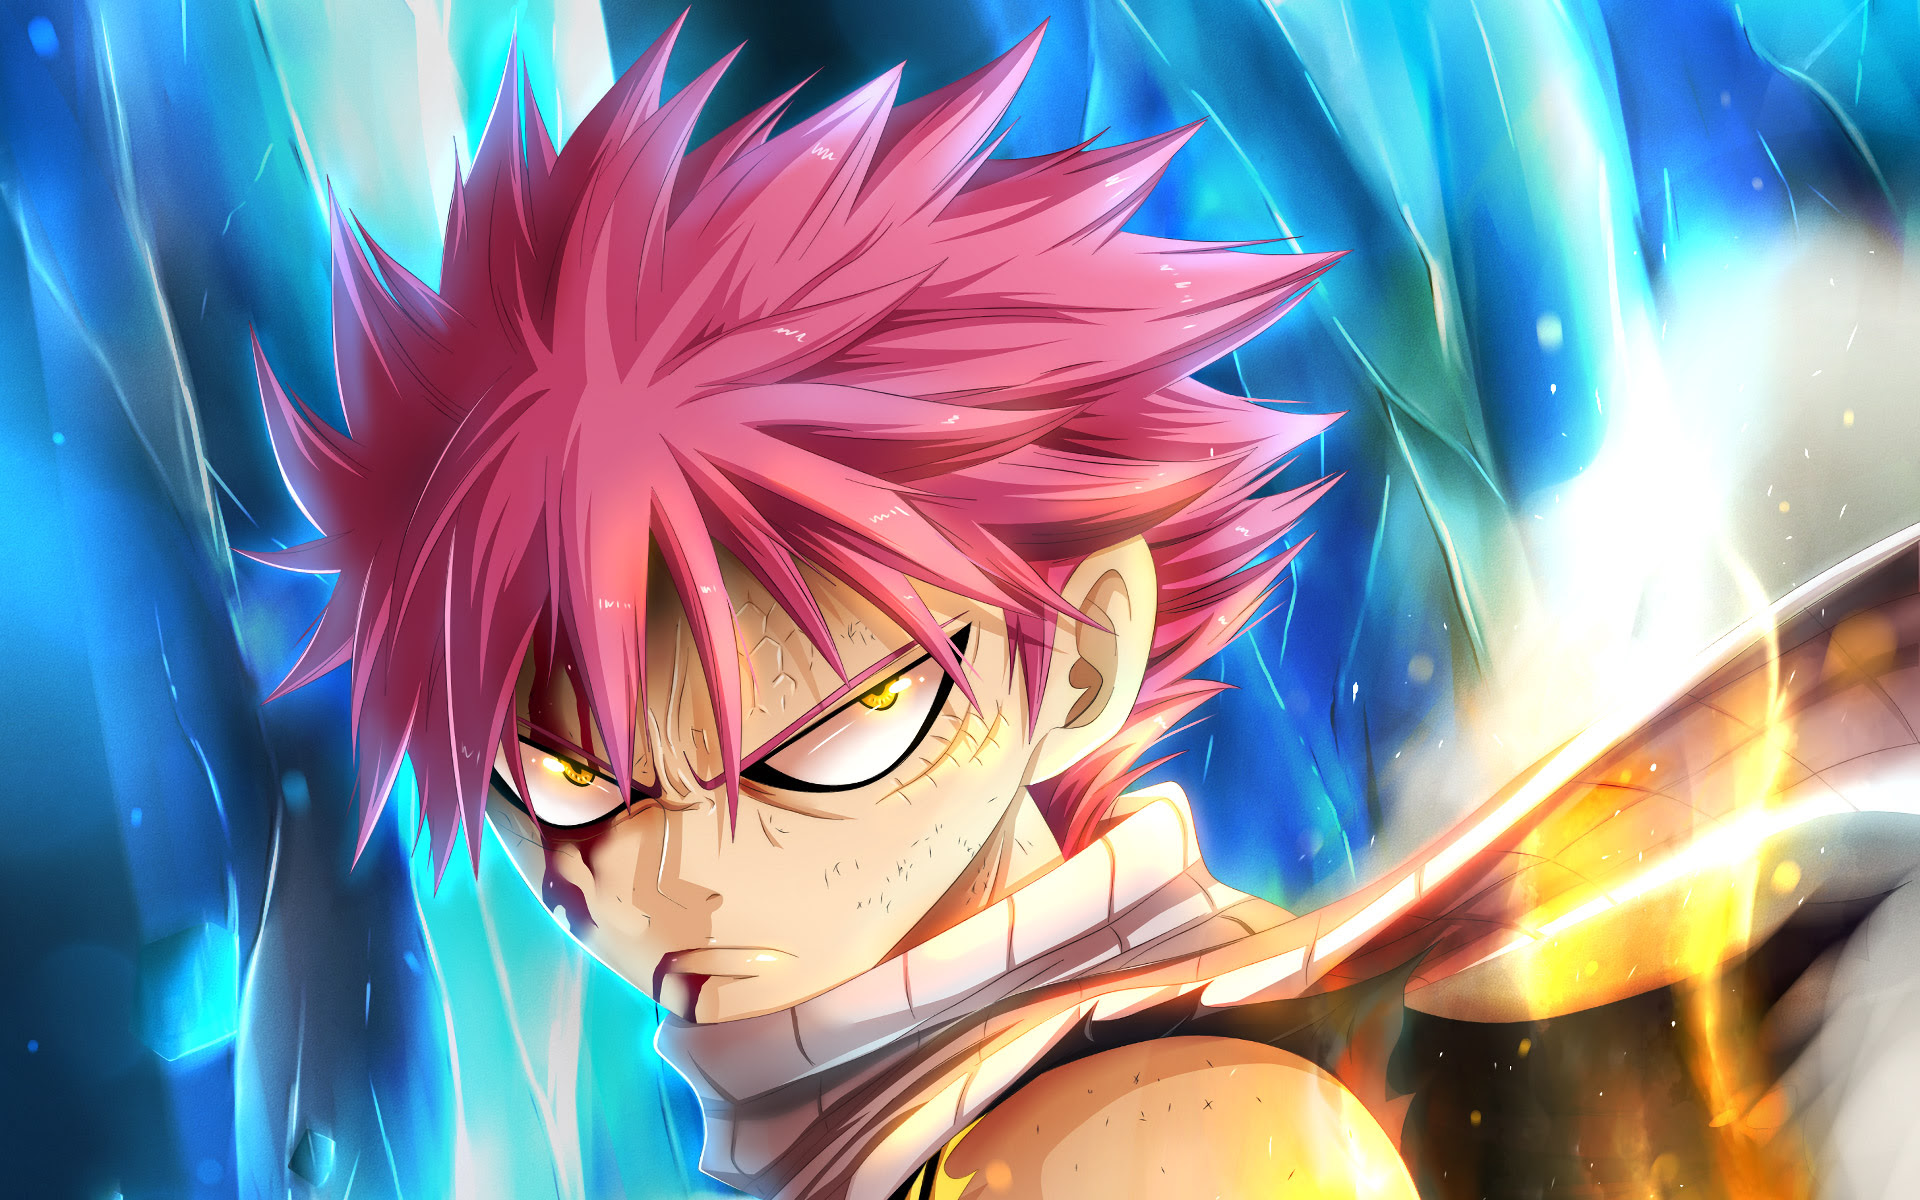 Download 9700 Wallpaper Android Fairy Tail Gratis